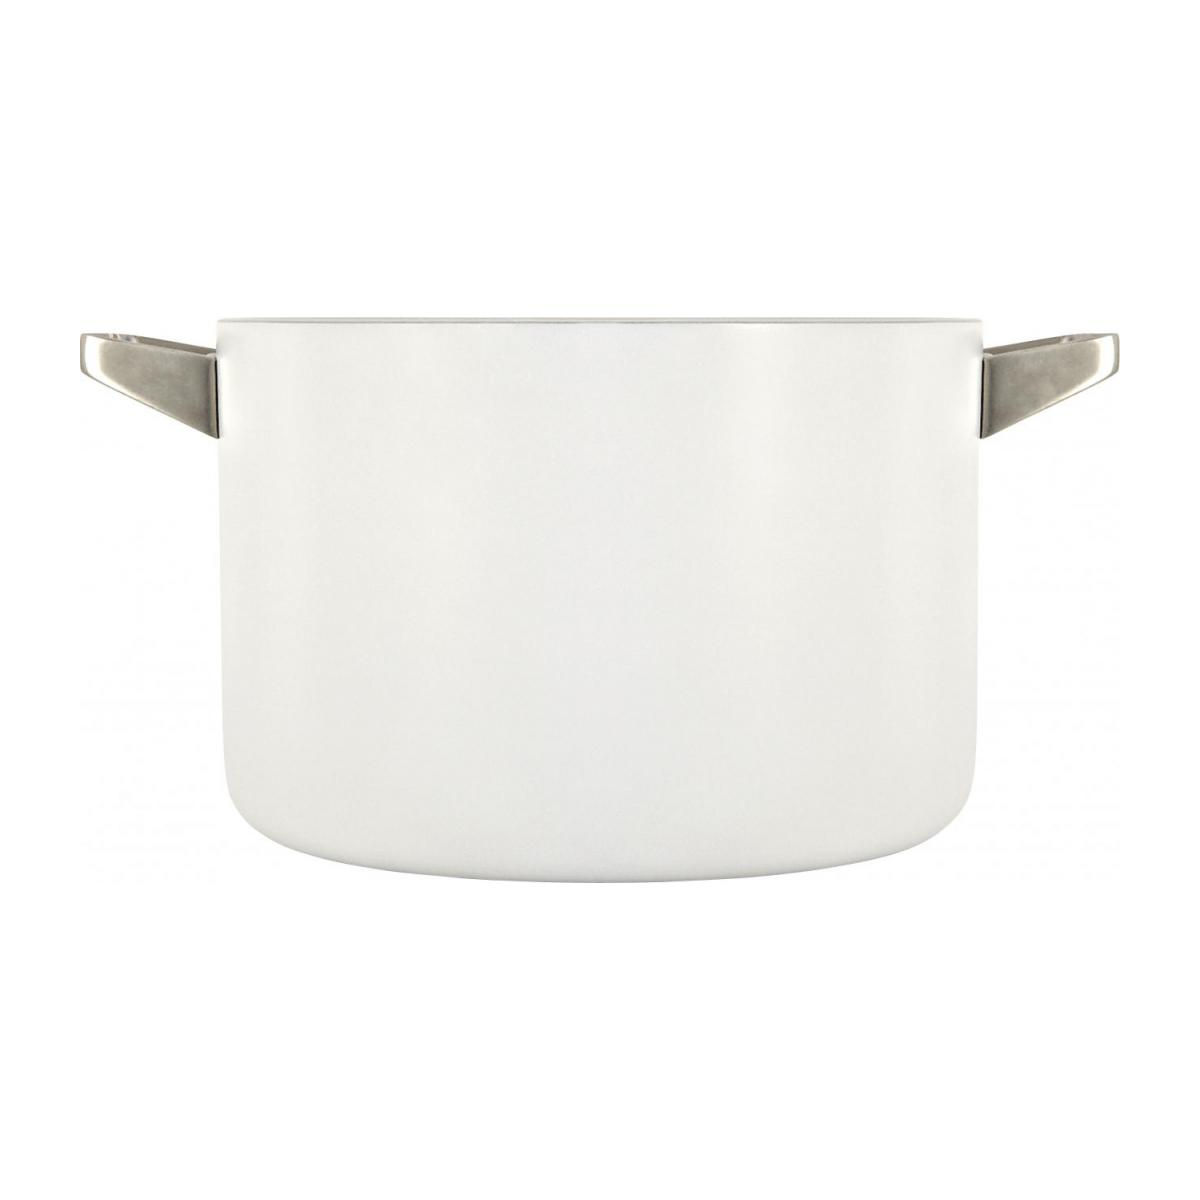 White aluminium pot and lid 26 cm with inner coating in ceramic n°3